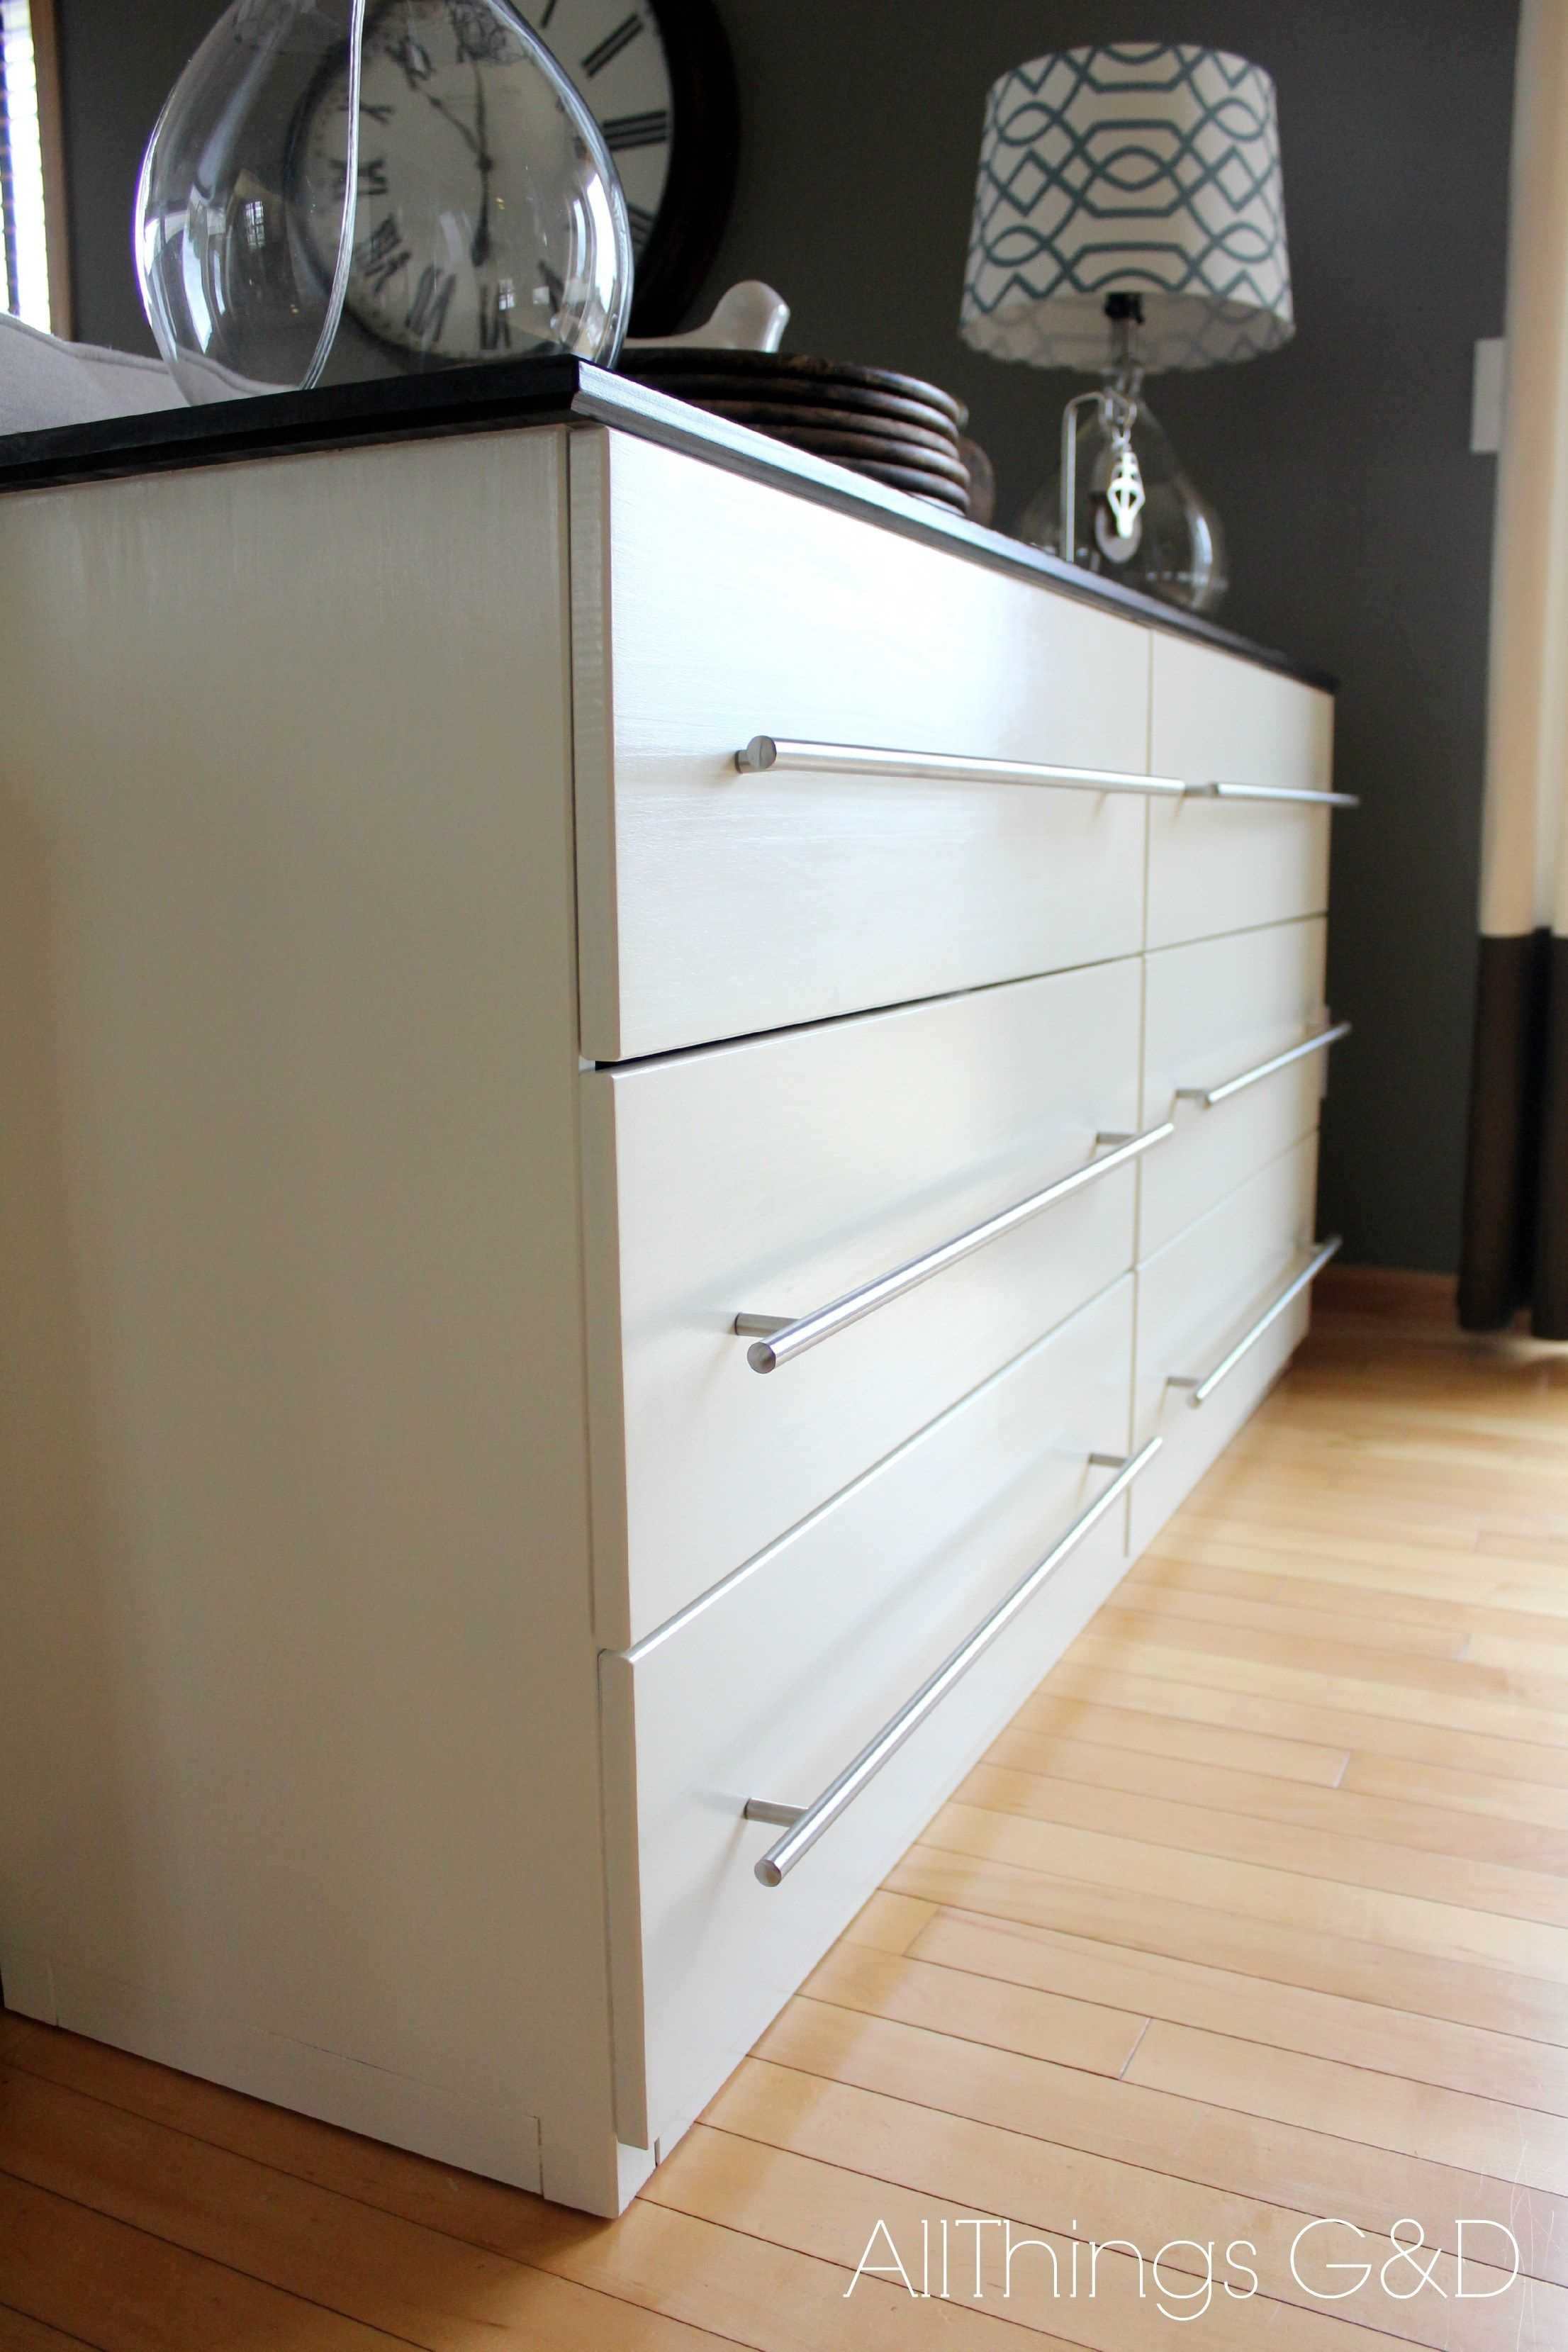 Ikea Tarva Transformed Into A Kitchen Sideboard  All Things Gd